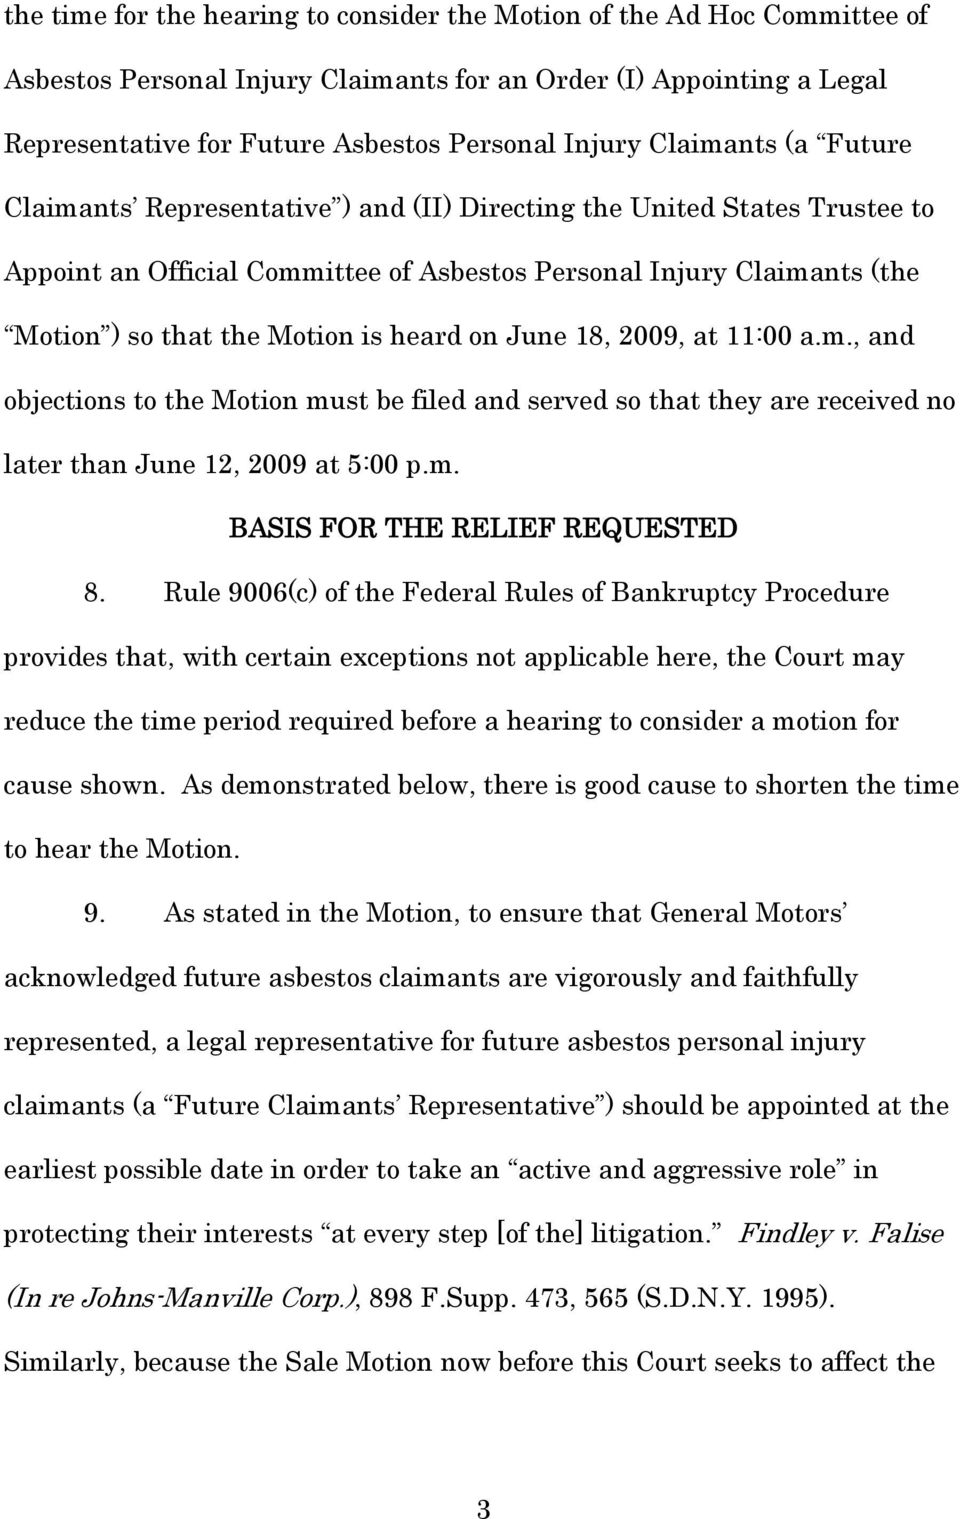 on June 18, 2009, at 11:00 a.m., and objections to the Motion must be filed and served so that they are received no later than June 12, 2009 at 5:00 p.m. BASIS FOR THE RELIEF REQUESTED 8.